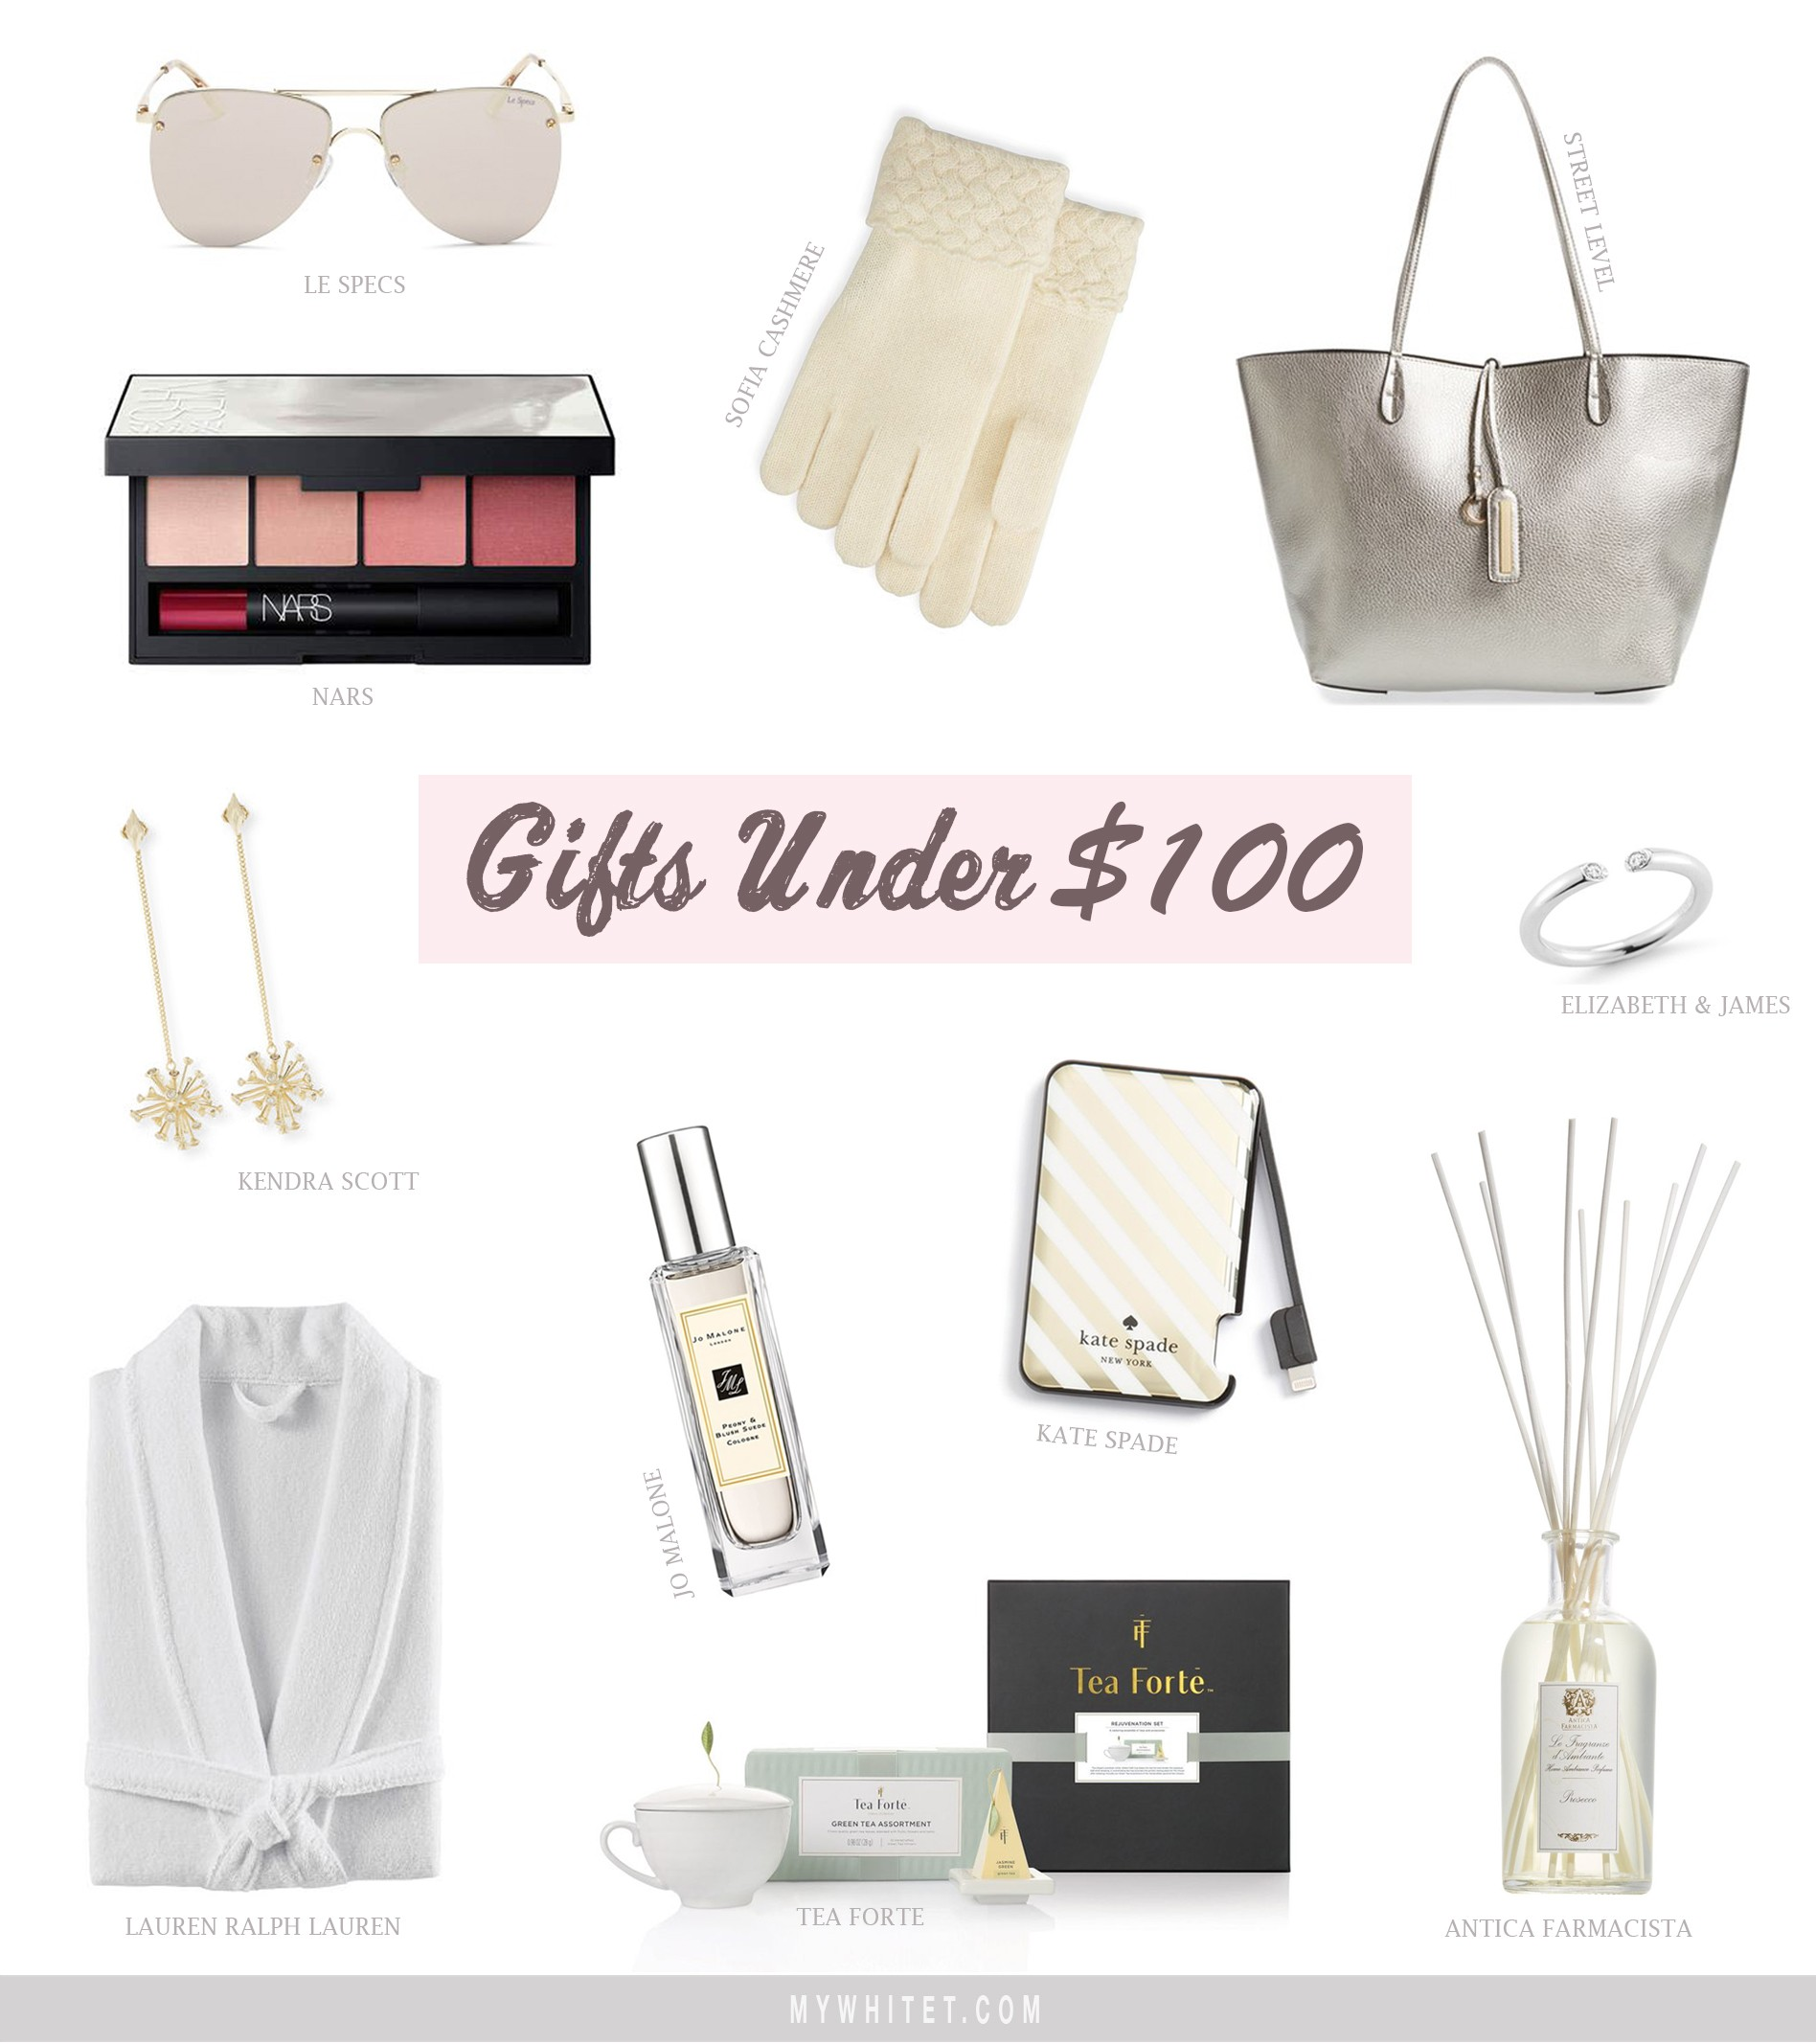 The Best Holiday Gifts Under $50 and $100 - mywhiteT